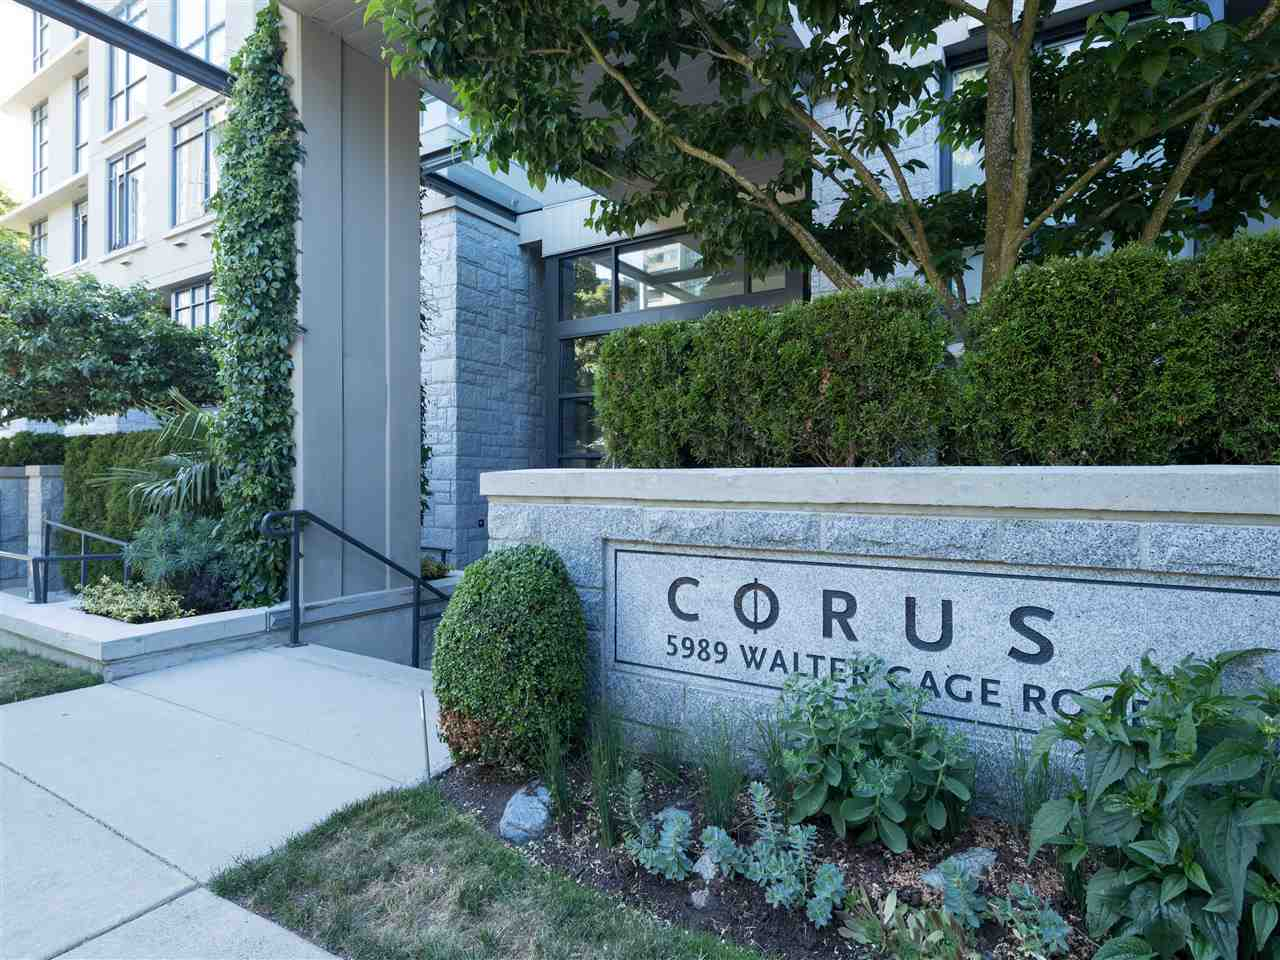 Condo Apartment at TH8 5991 WALTER GAGE ROAD, Unit TH8, Vancouver West, British Columbia. Image 2